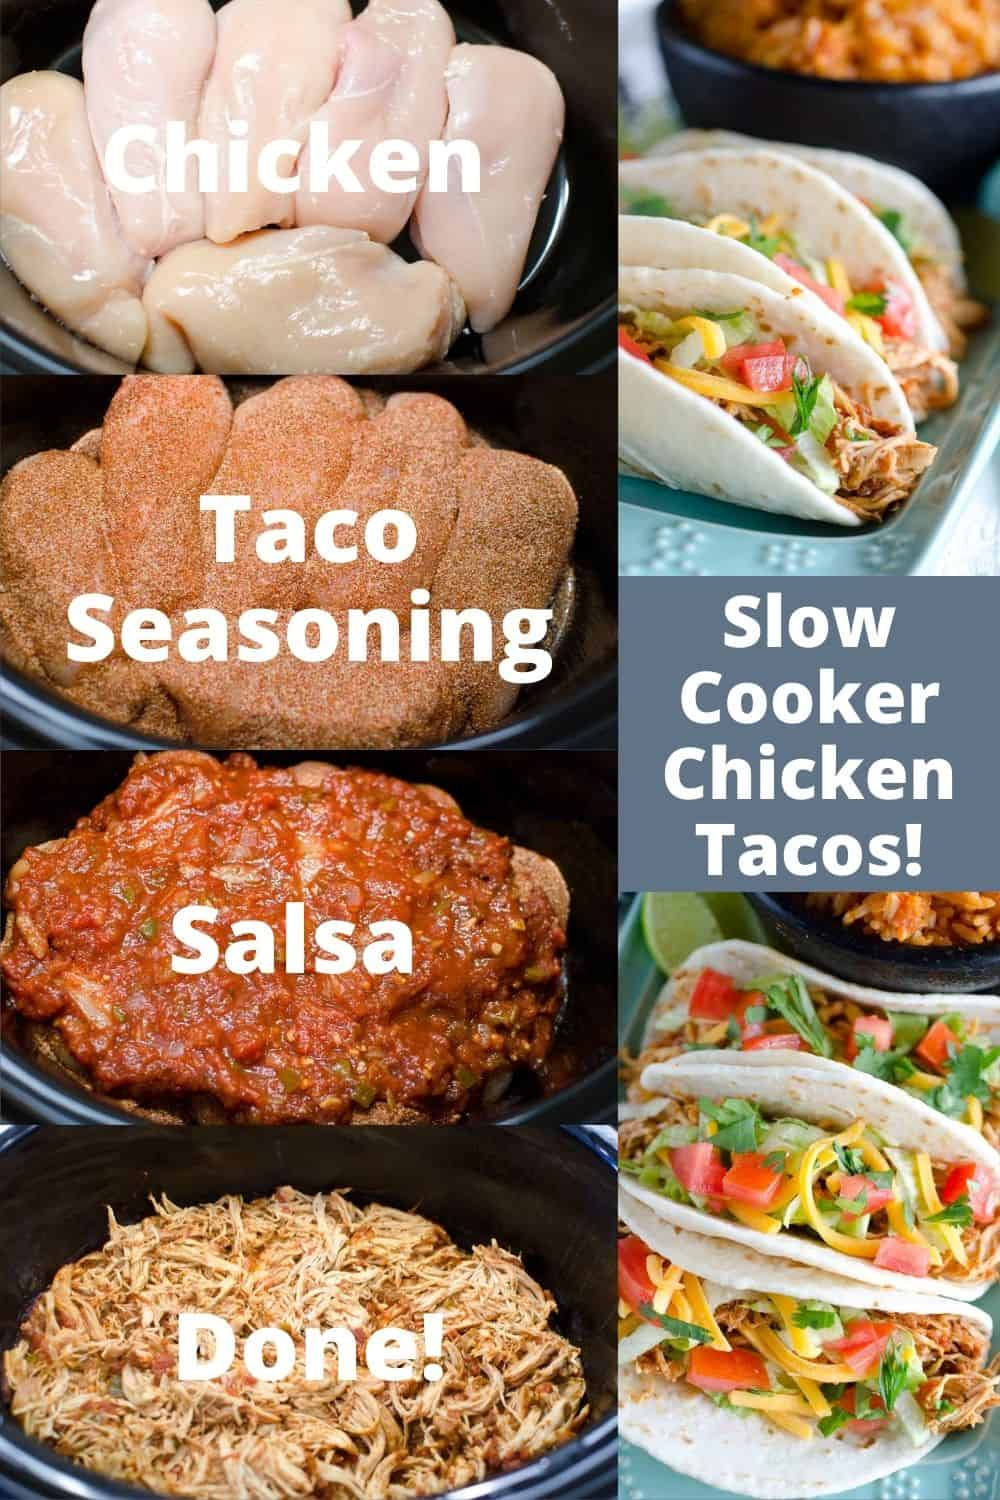 Our easy Slow Cooker Chicken Tacos recipe has only 3 ingredients! You can use this shredded chicken in tacos, enchiladas, burritos, salads and more!